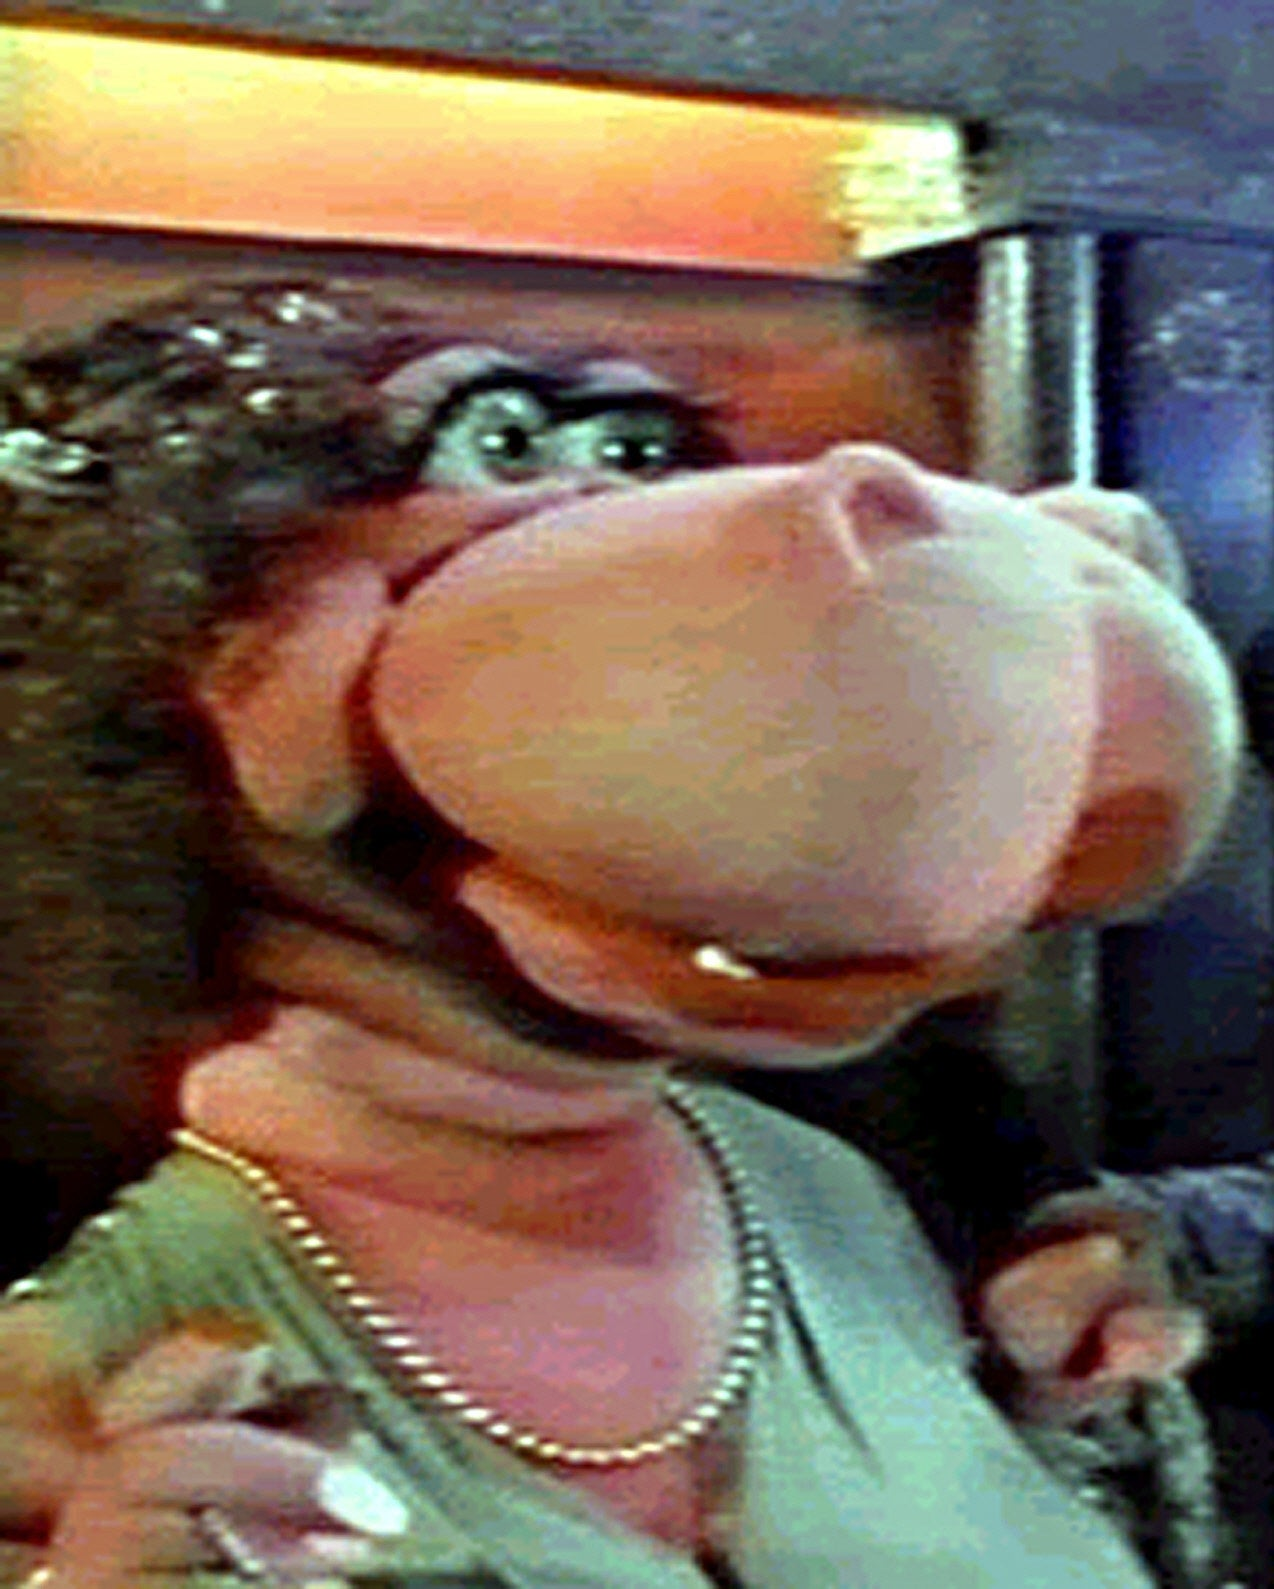 puppet with dress and pearl necklace and large snout but flesh-colored skin